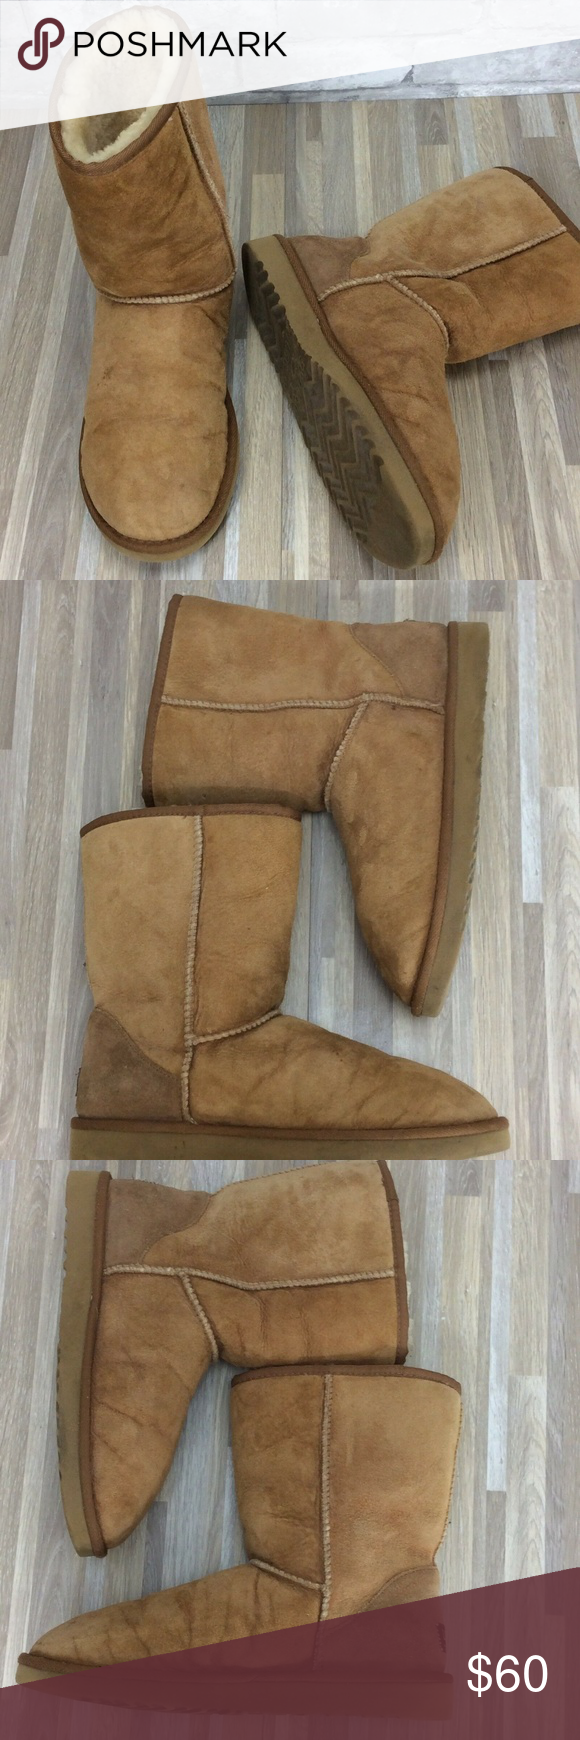 f48be2cf5fd Ugg Boots Chestnut Leather Shearling Classic Short Ugg Boots Womens Size  10M Chestnut Leather Shearling Calf